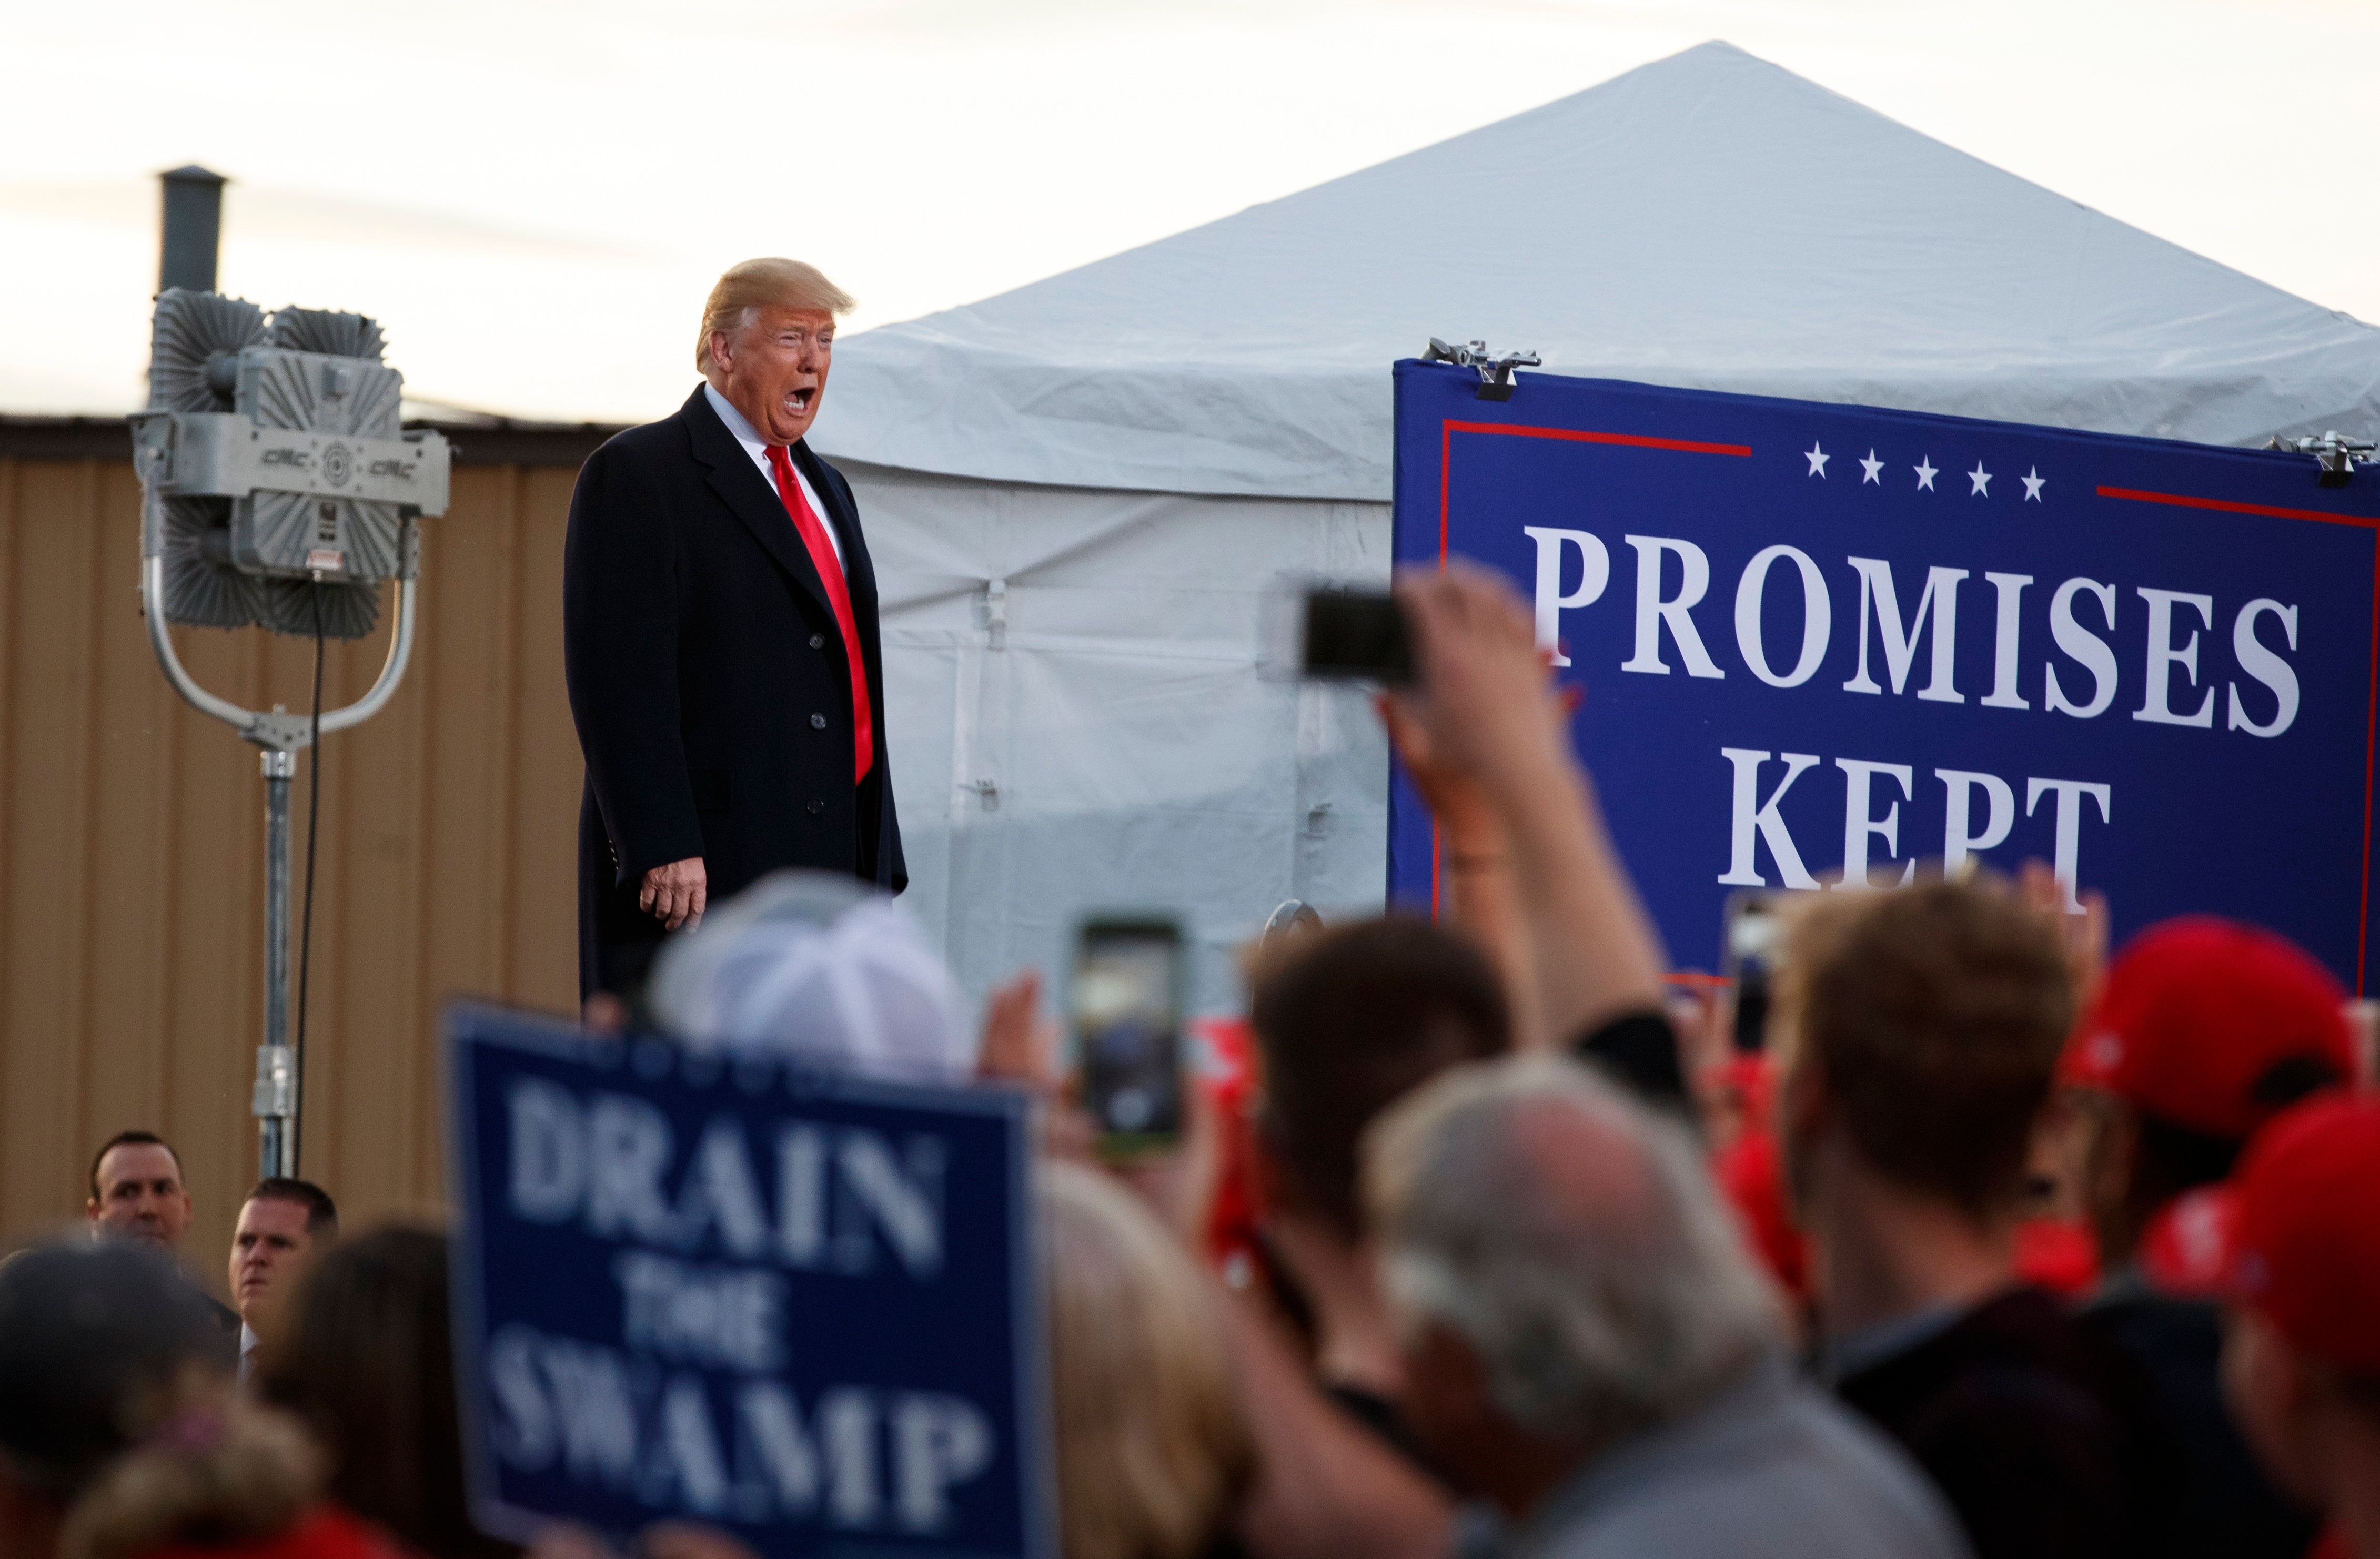 President Donald Trump calls out as he arrives at a campaign rally at Minuteman Aviation Hangar, Thursday, Oct. 18, 2018, in Missoula, Mont. (AP Photo/Carolyn Kaster)